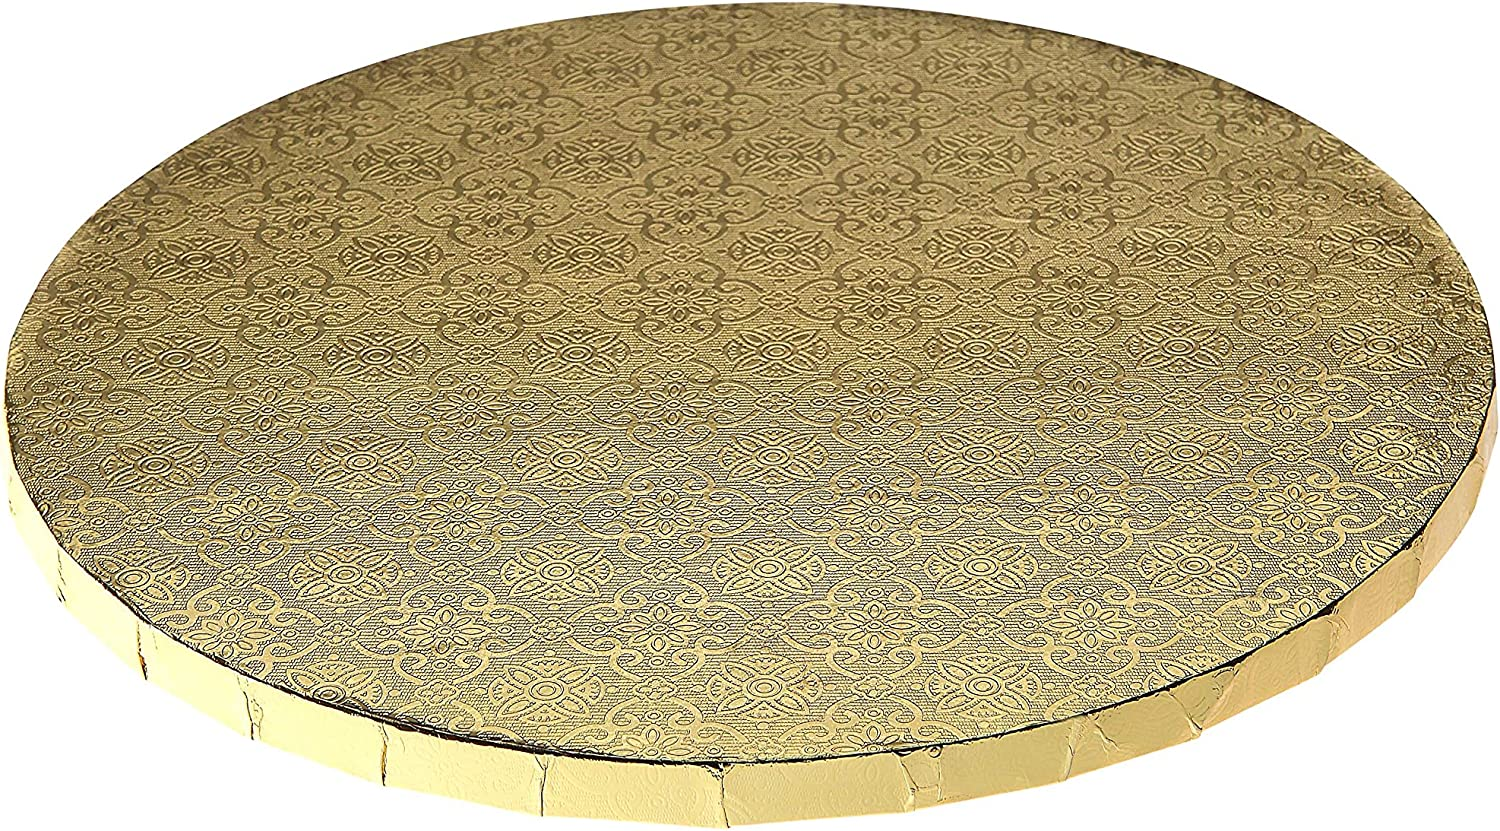 W PACKAGING WPDRM12G 12  (12x12x0.31) gold Round Cake Drum, 1 2  Thick, B C-Flute, Corrugated with Coated Embossed Foil Paper, Covers Top and Sides (Pack of 12)